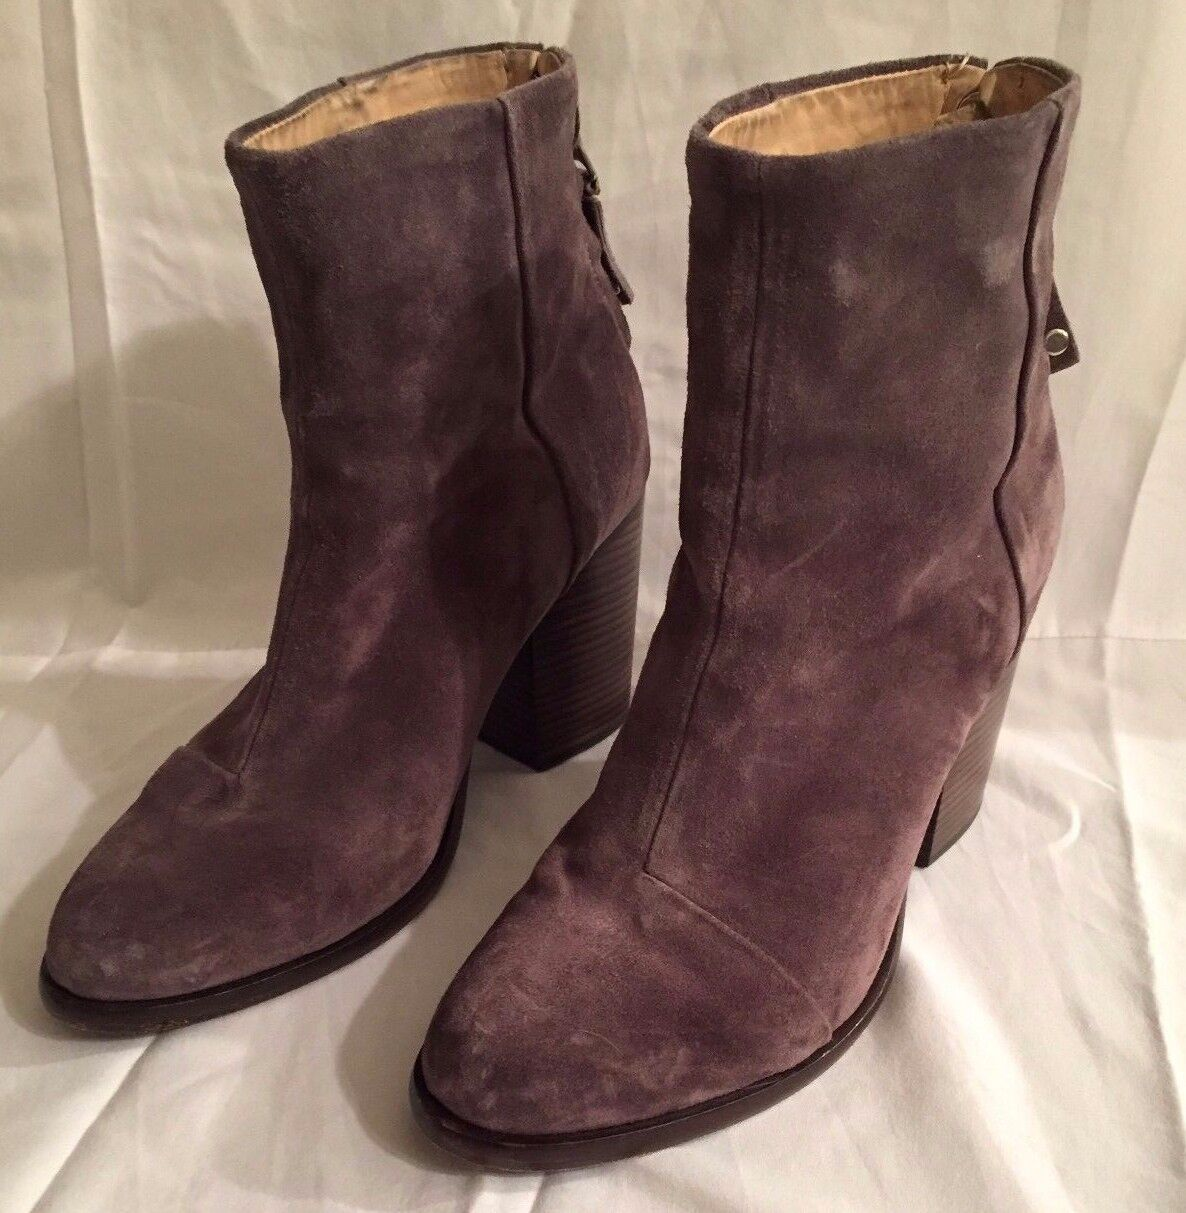 RAG & BONE Ashby Grey Suede Ankle Booties, size 37